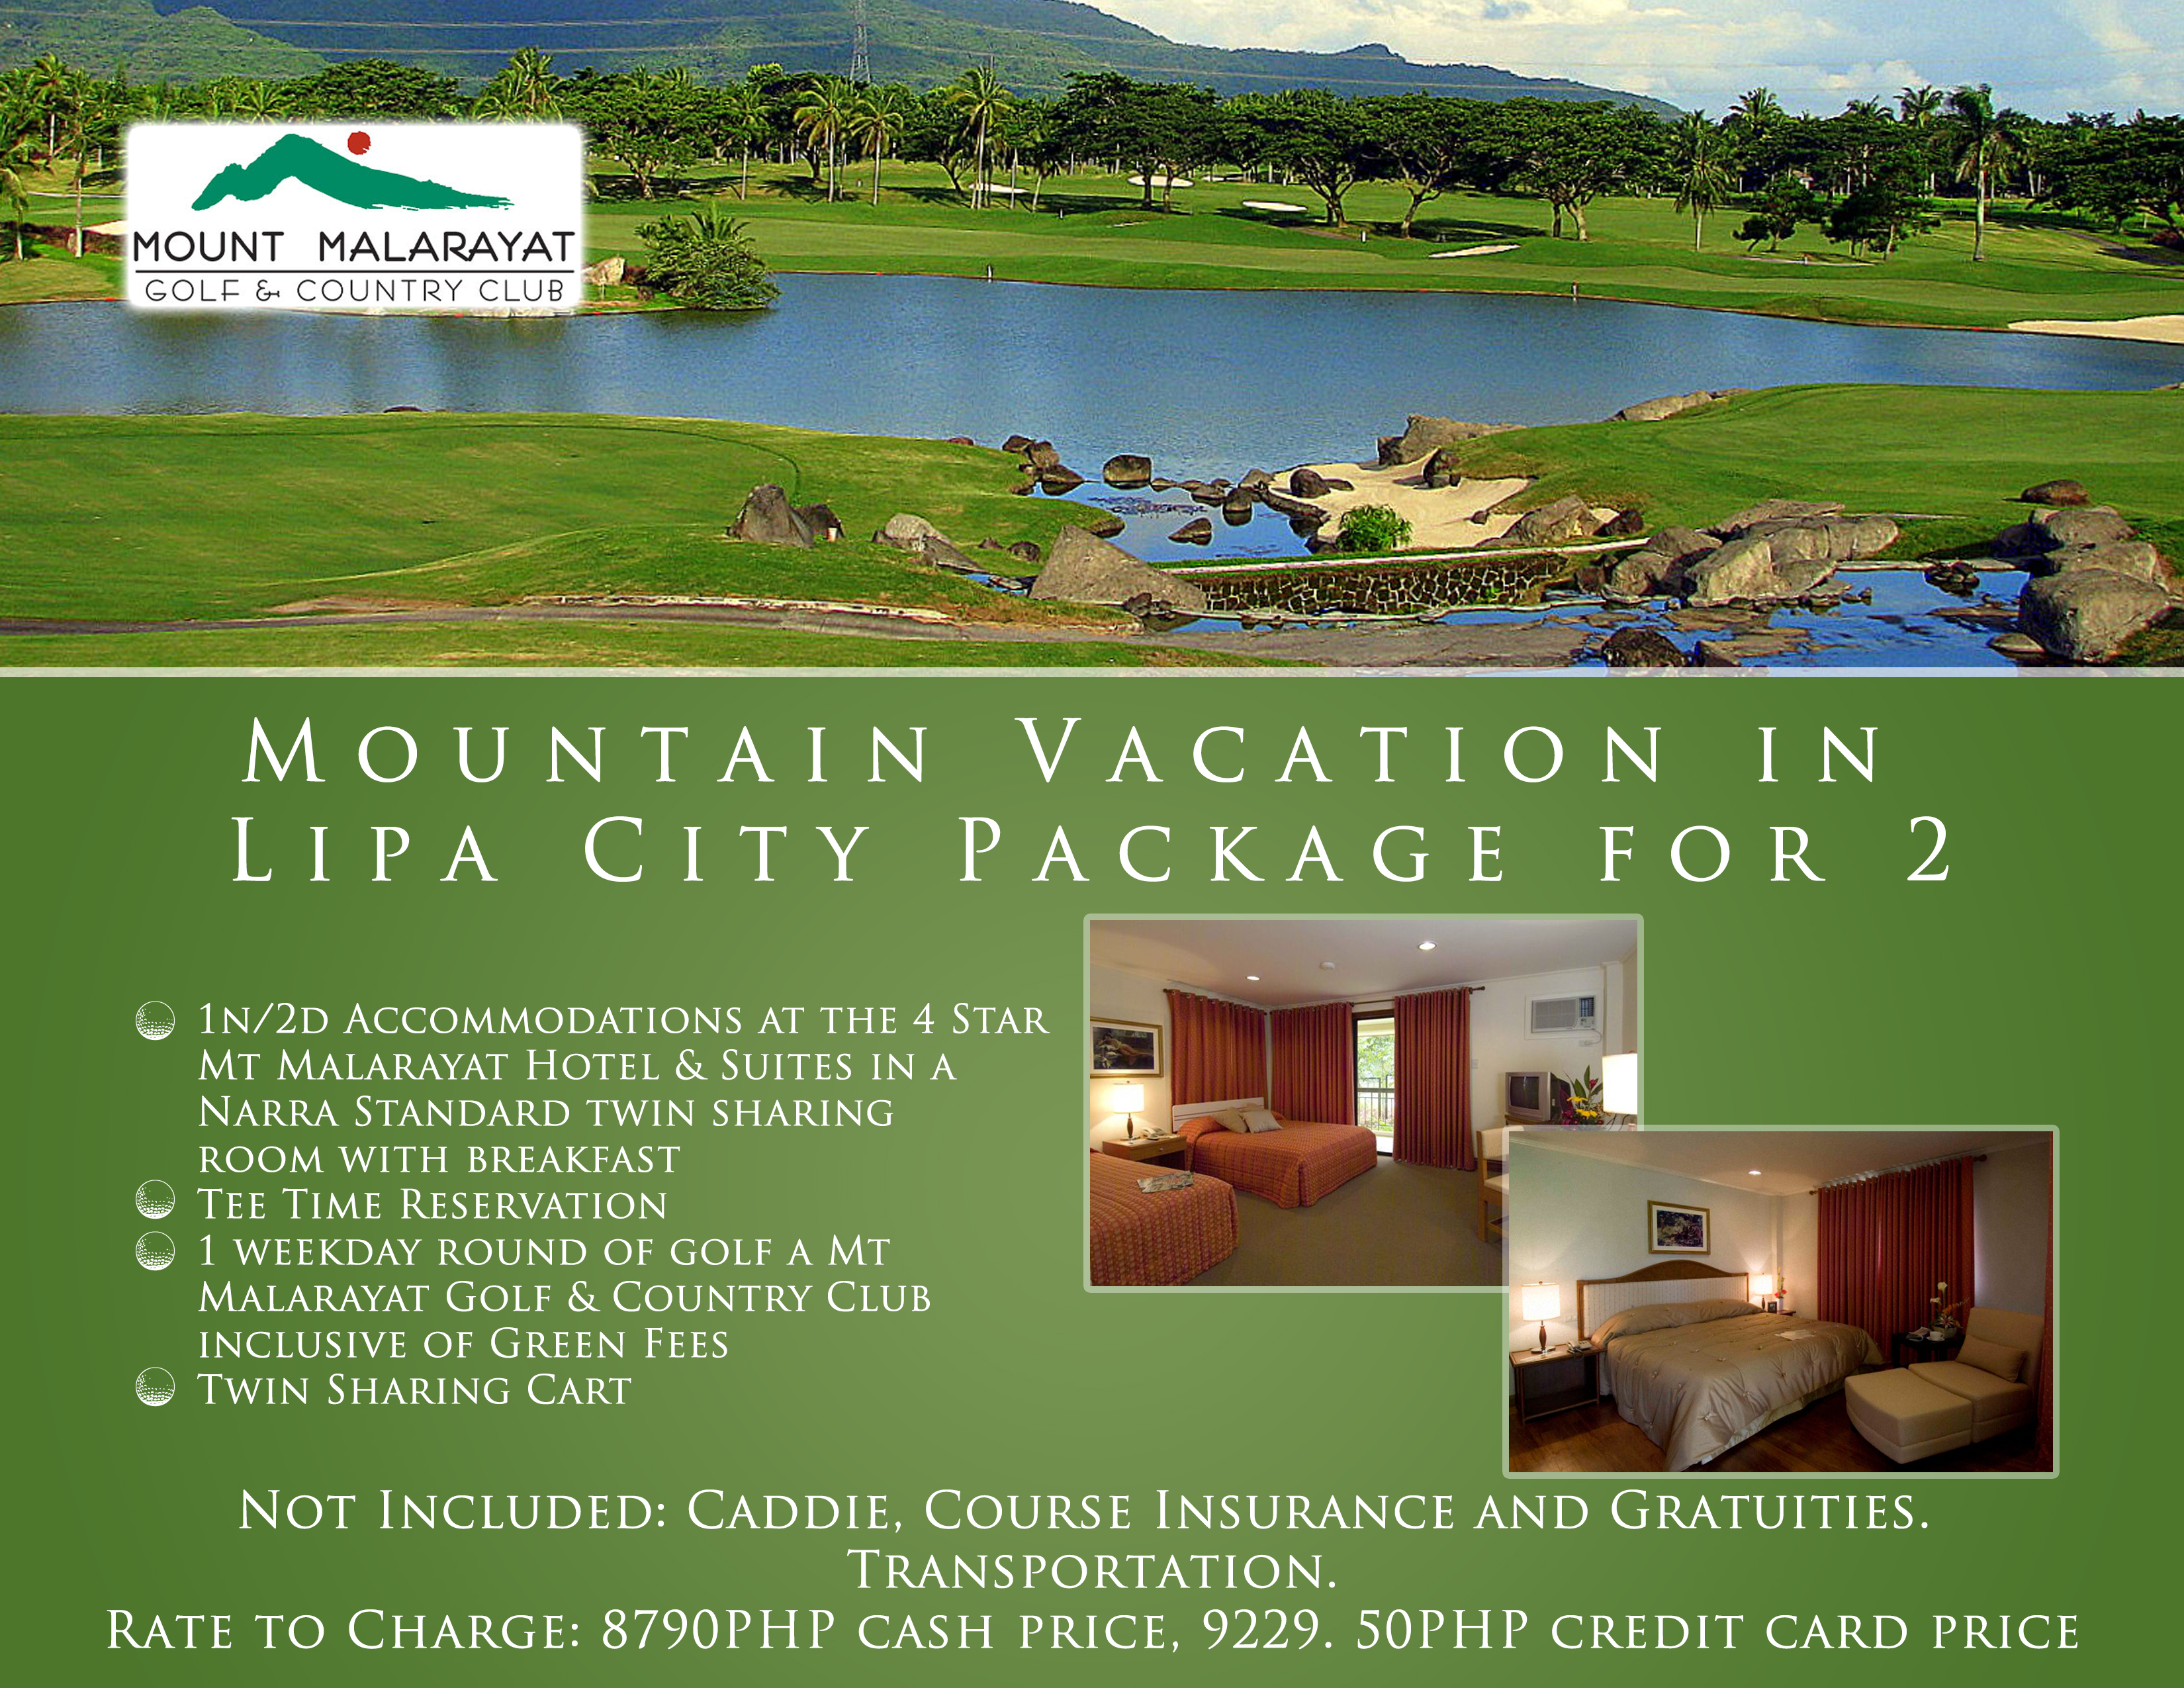 Offer #11 - Mountain Vacation in Lipa City Package for 2